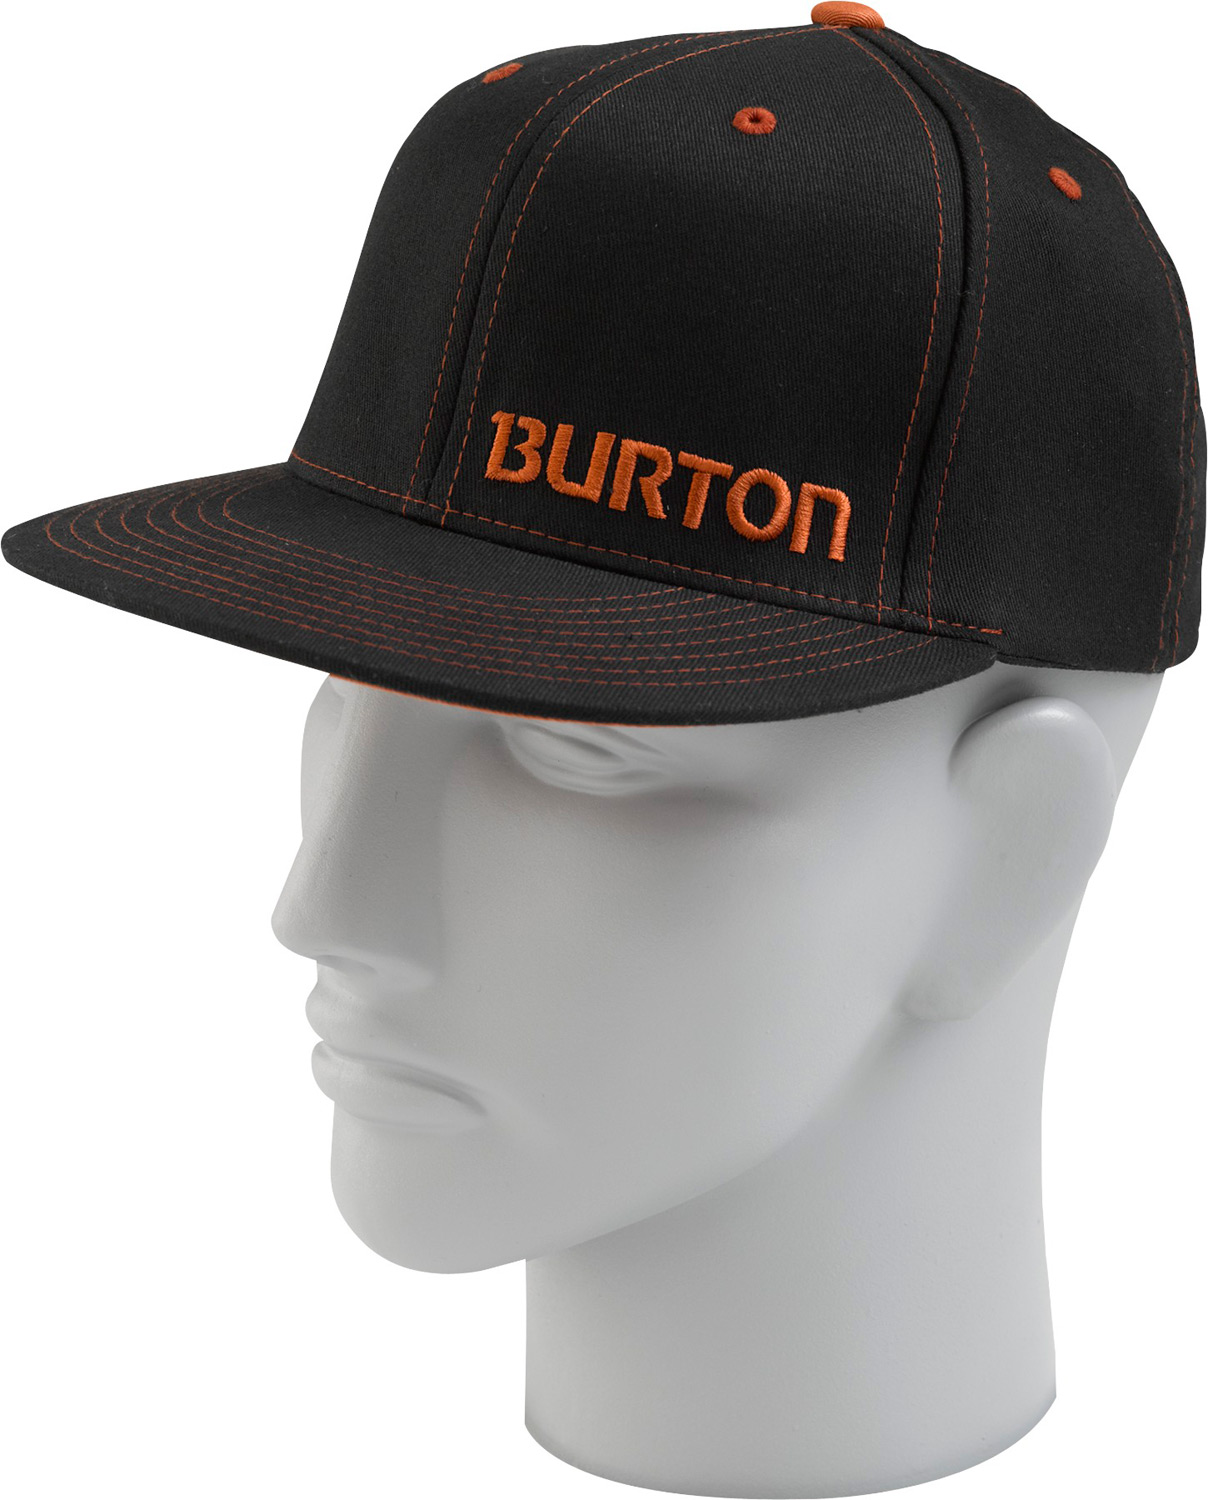 Snowboard Key Features of the Burton Stamped Cap: 98% Cotton/2% Spandex Flat Visor - $15.95